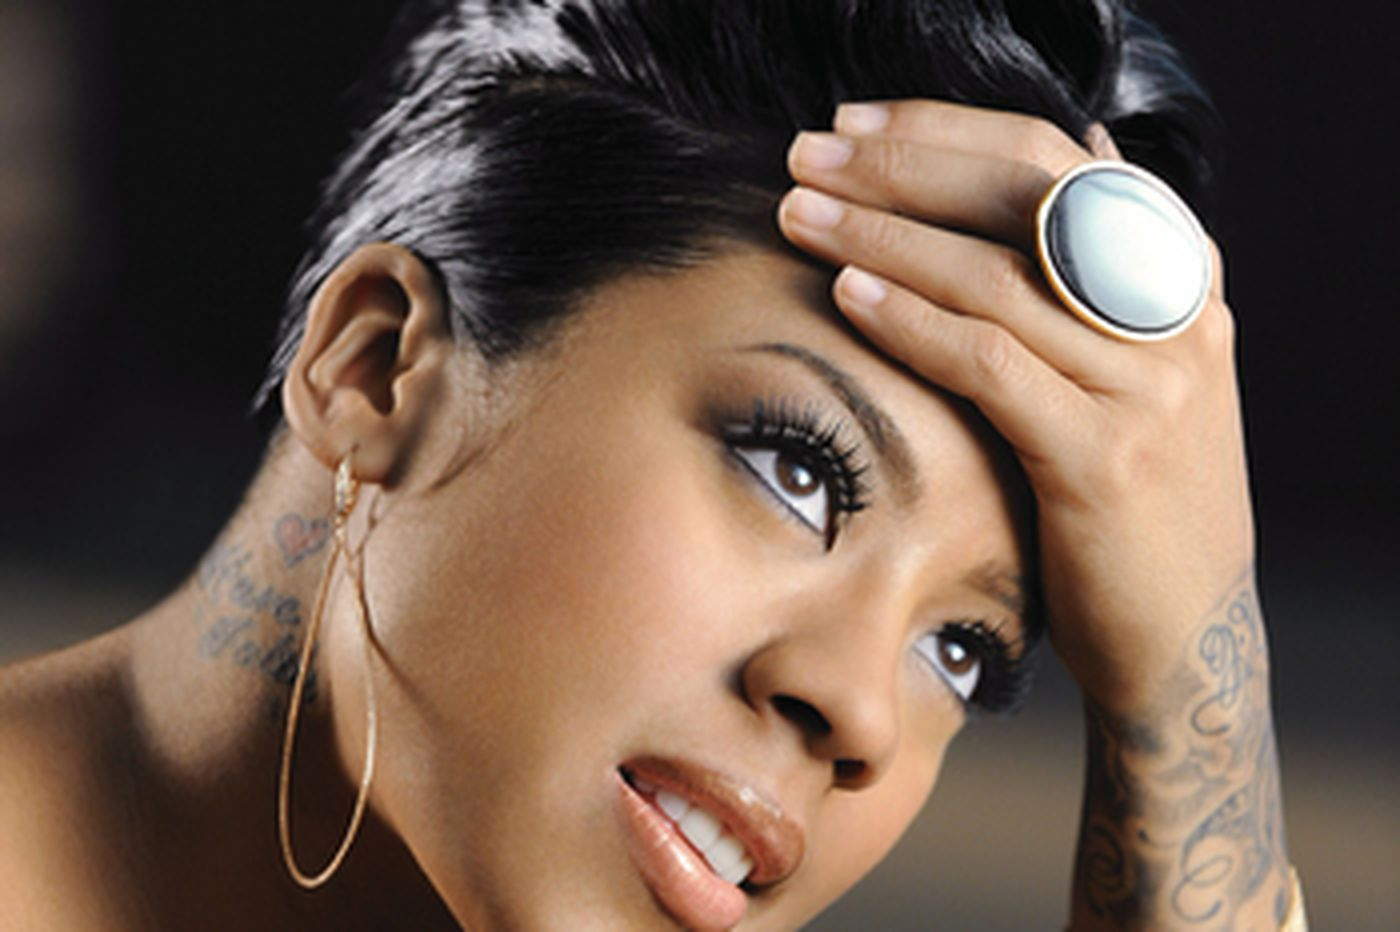 To create 'A Different Me,' Keyshia Cole decided to get sexy